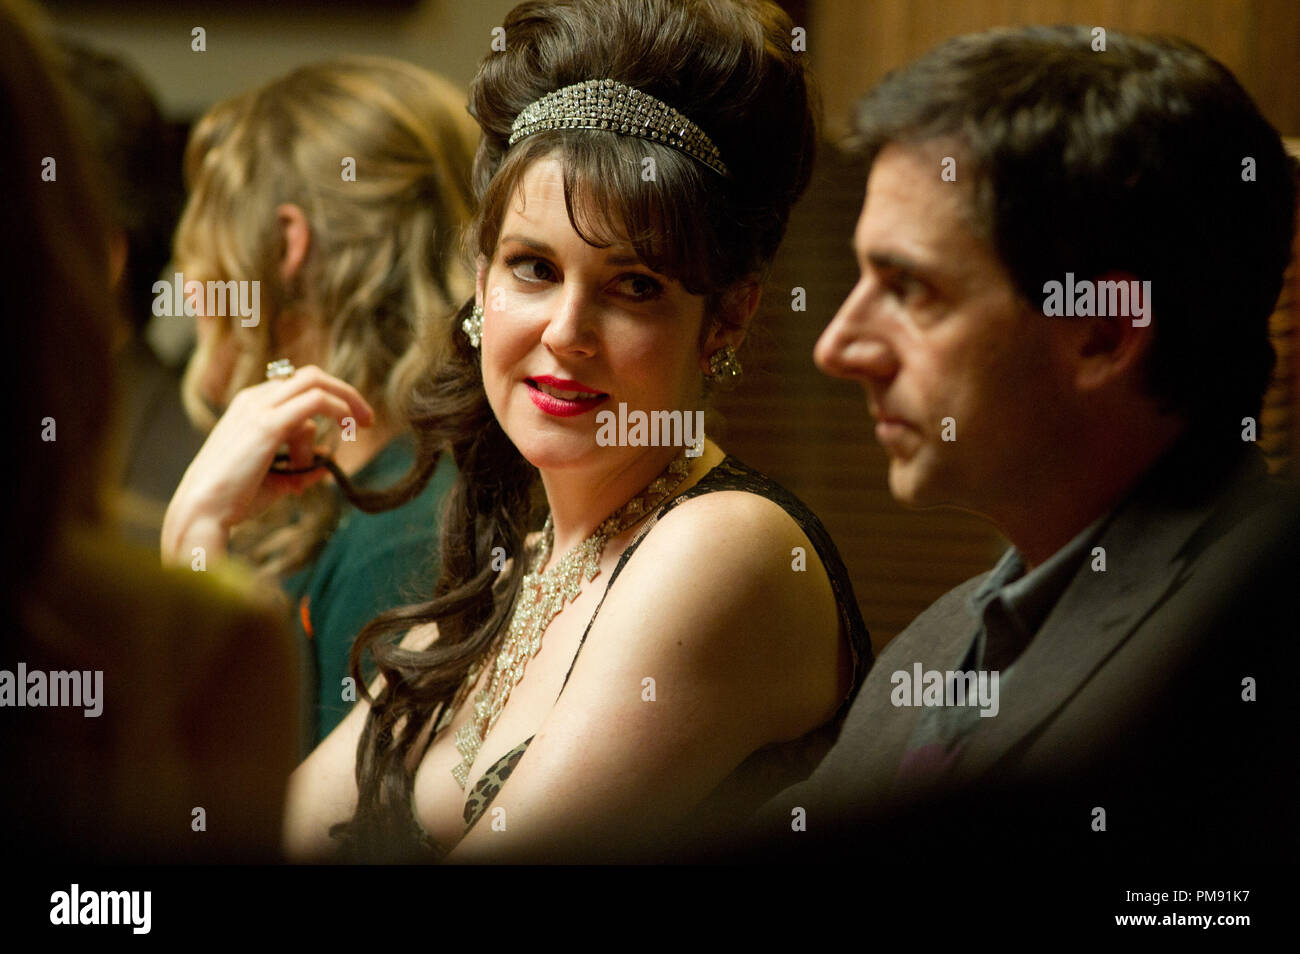 (l to r.) Melanie Lynskey stars as Karen and Steve Carell stars as Dodge in Lorene Scafaria's SEEKING A FRIEND FOR THE END OF THE WORLD, a Focus Features release. - Stock Image